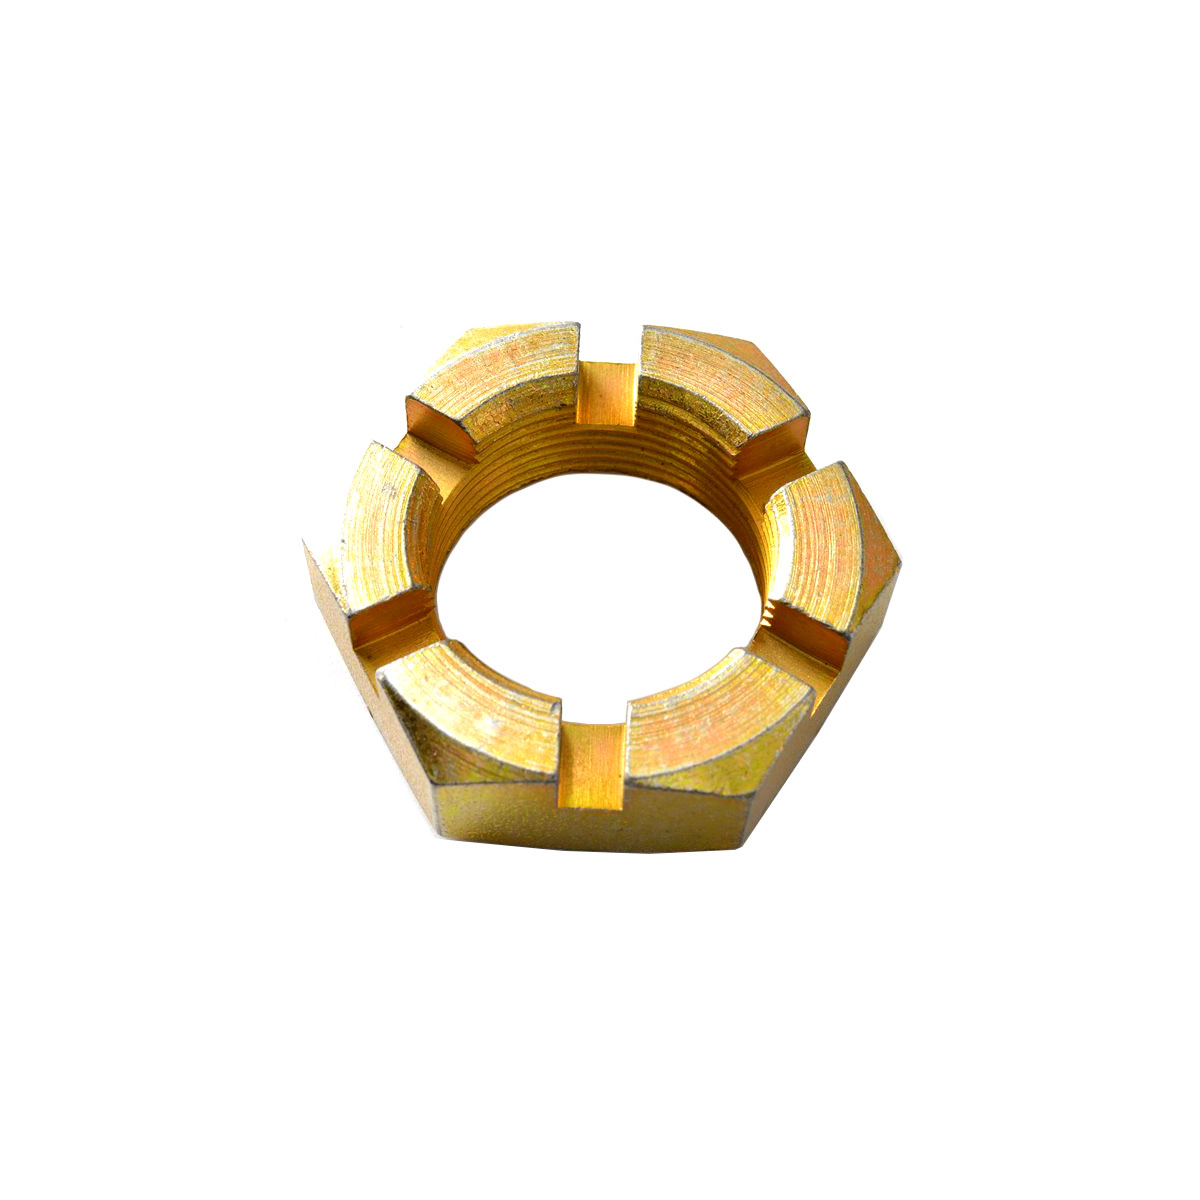 Scag Hex Nut 1-20 Slotted HG51821